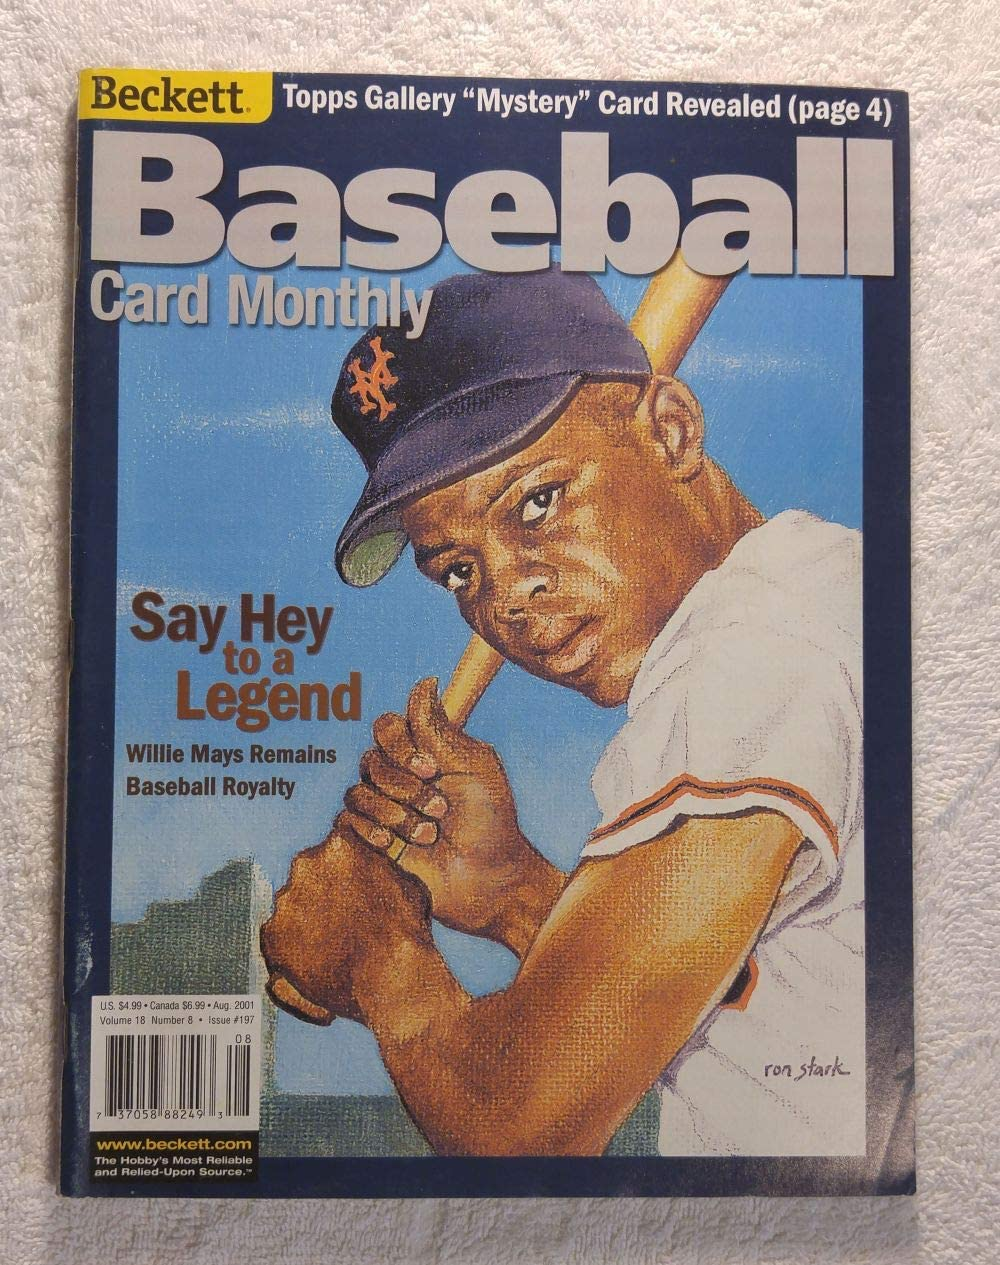 Willie Mays - New York Giants - Say Hey to a Legend - Beckett Baseball Card Monthly - #197 - August 2001